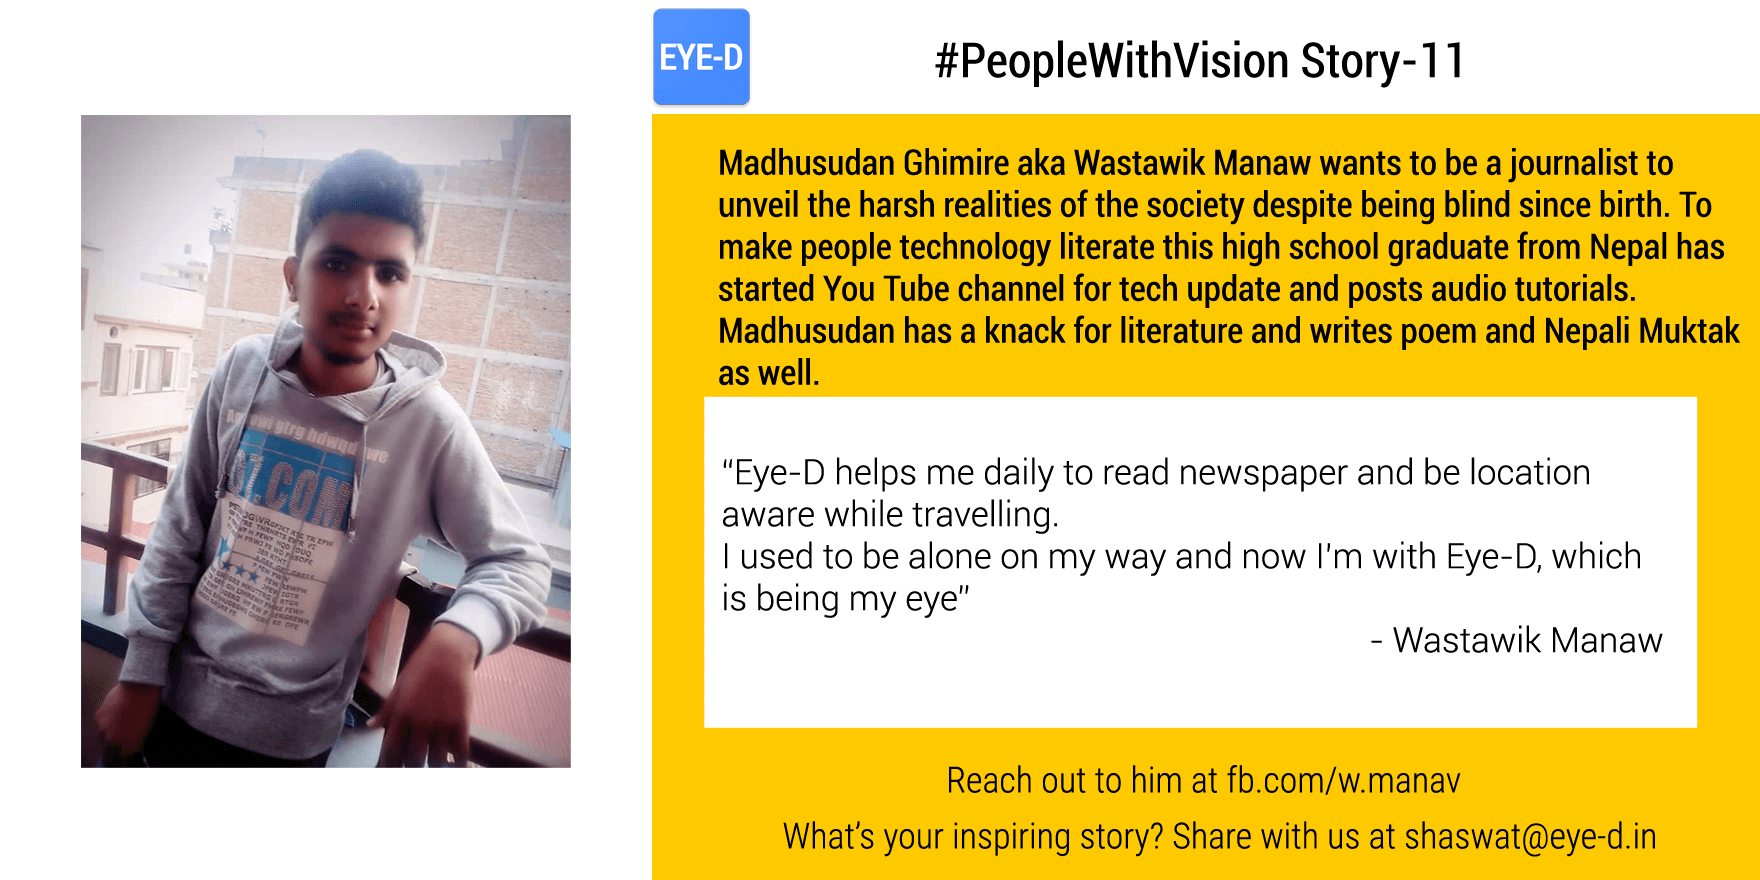 Manaw's #PeopleWithVision talks about Manaw, the YouTuber from Nepal is on a mission to make people technology literate. His #People with vision story talks about his life and how Eye-D is helping him in leading an Independent life.